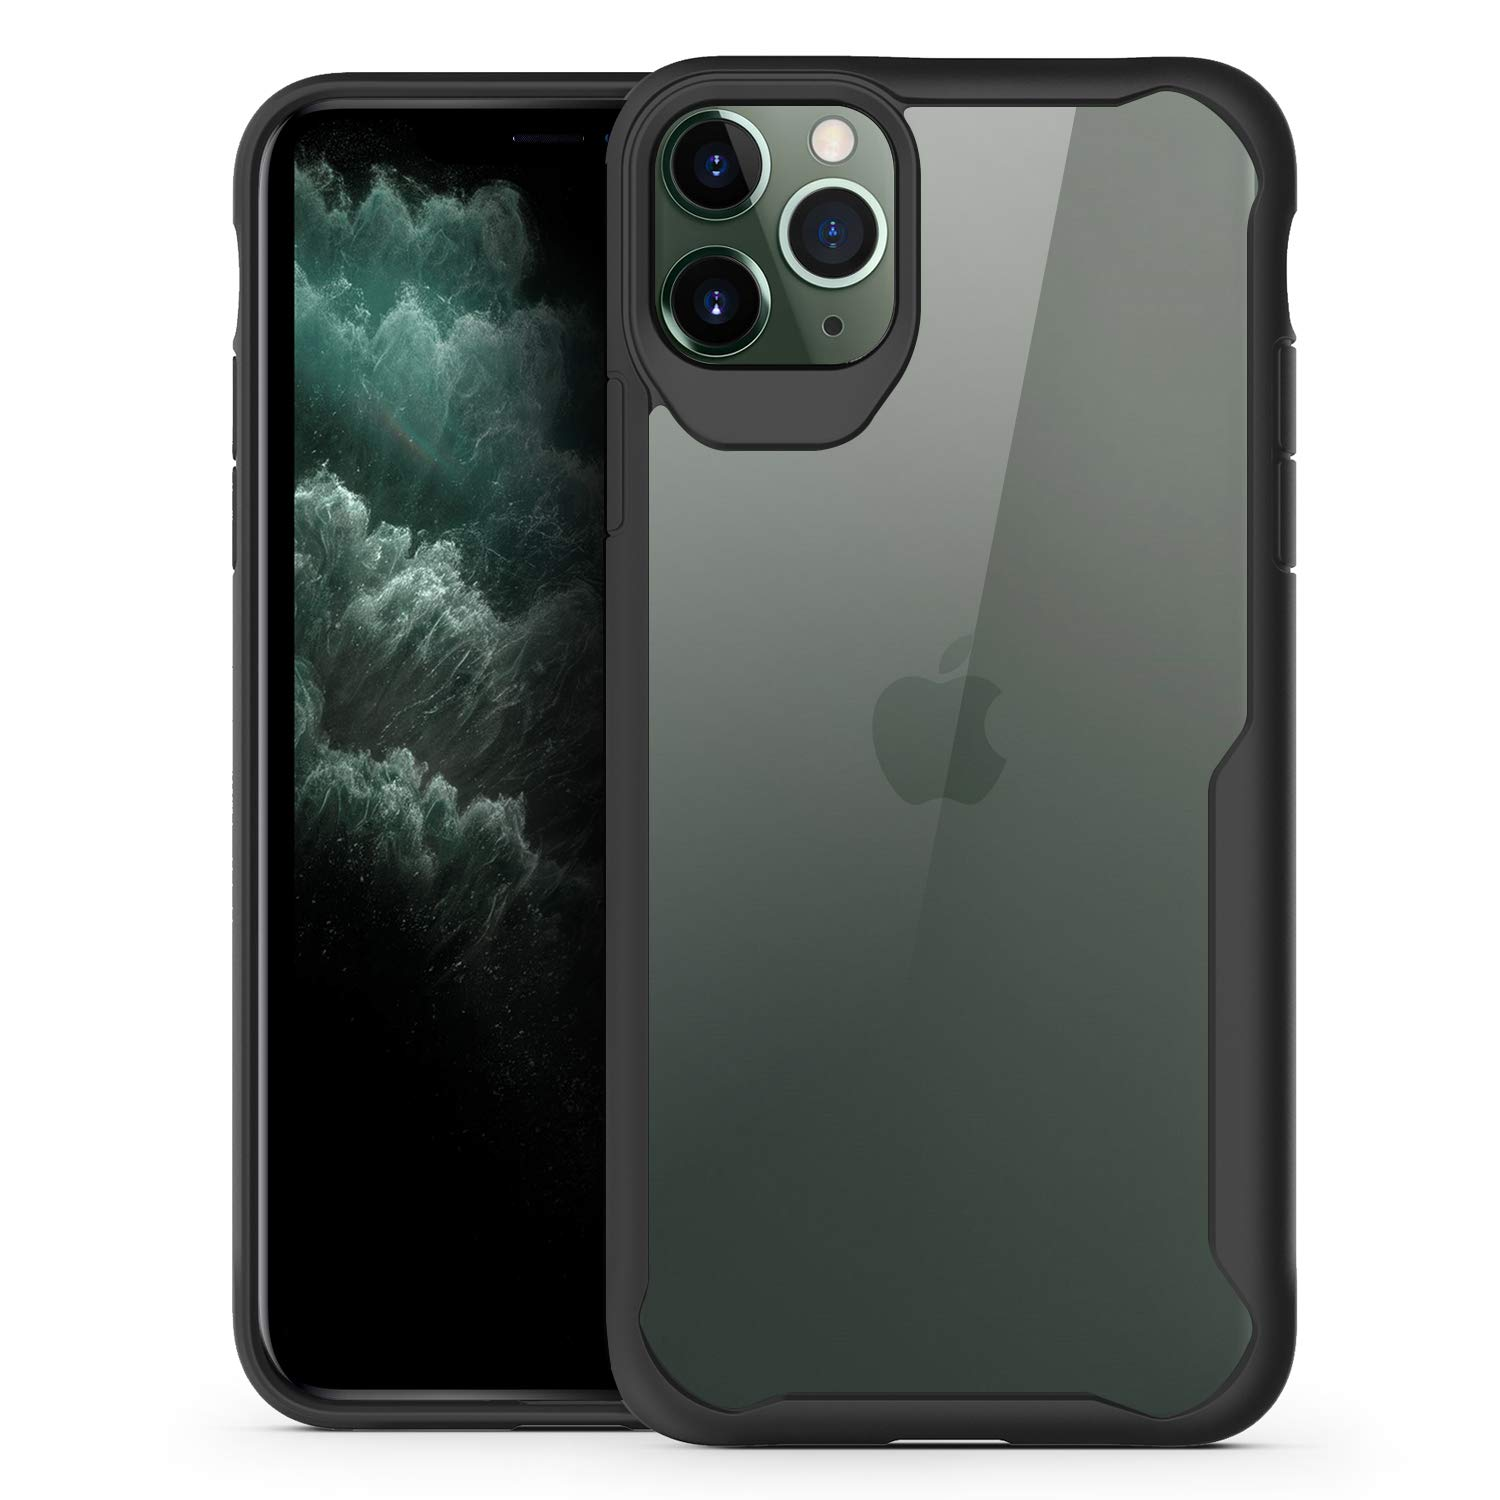 Olixar for iPhone 11 Pro Bumper Case - Shockproof Transparent Bumper Cover - Hard Slim Frame with Air Cushion Protection - Anti-Scratch Clear Back - NovaShield - Black